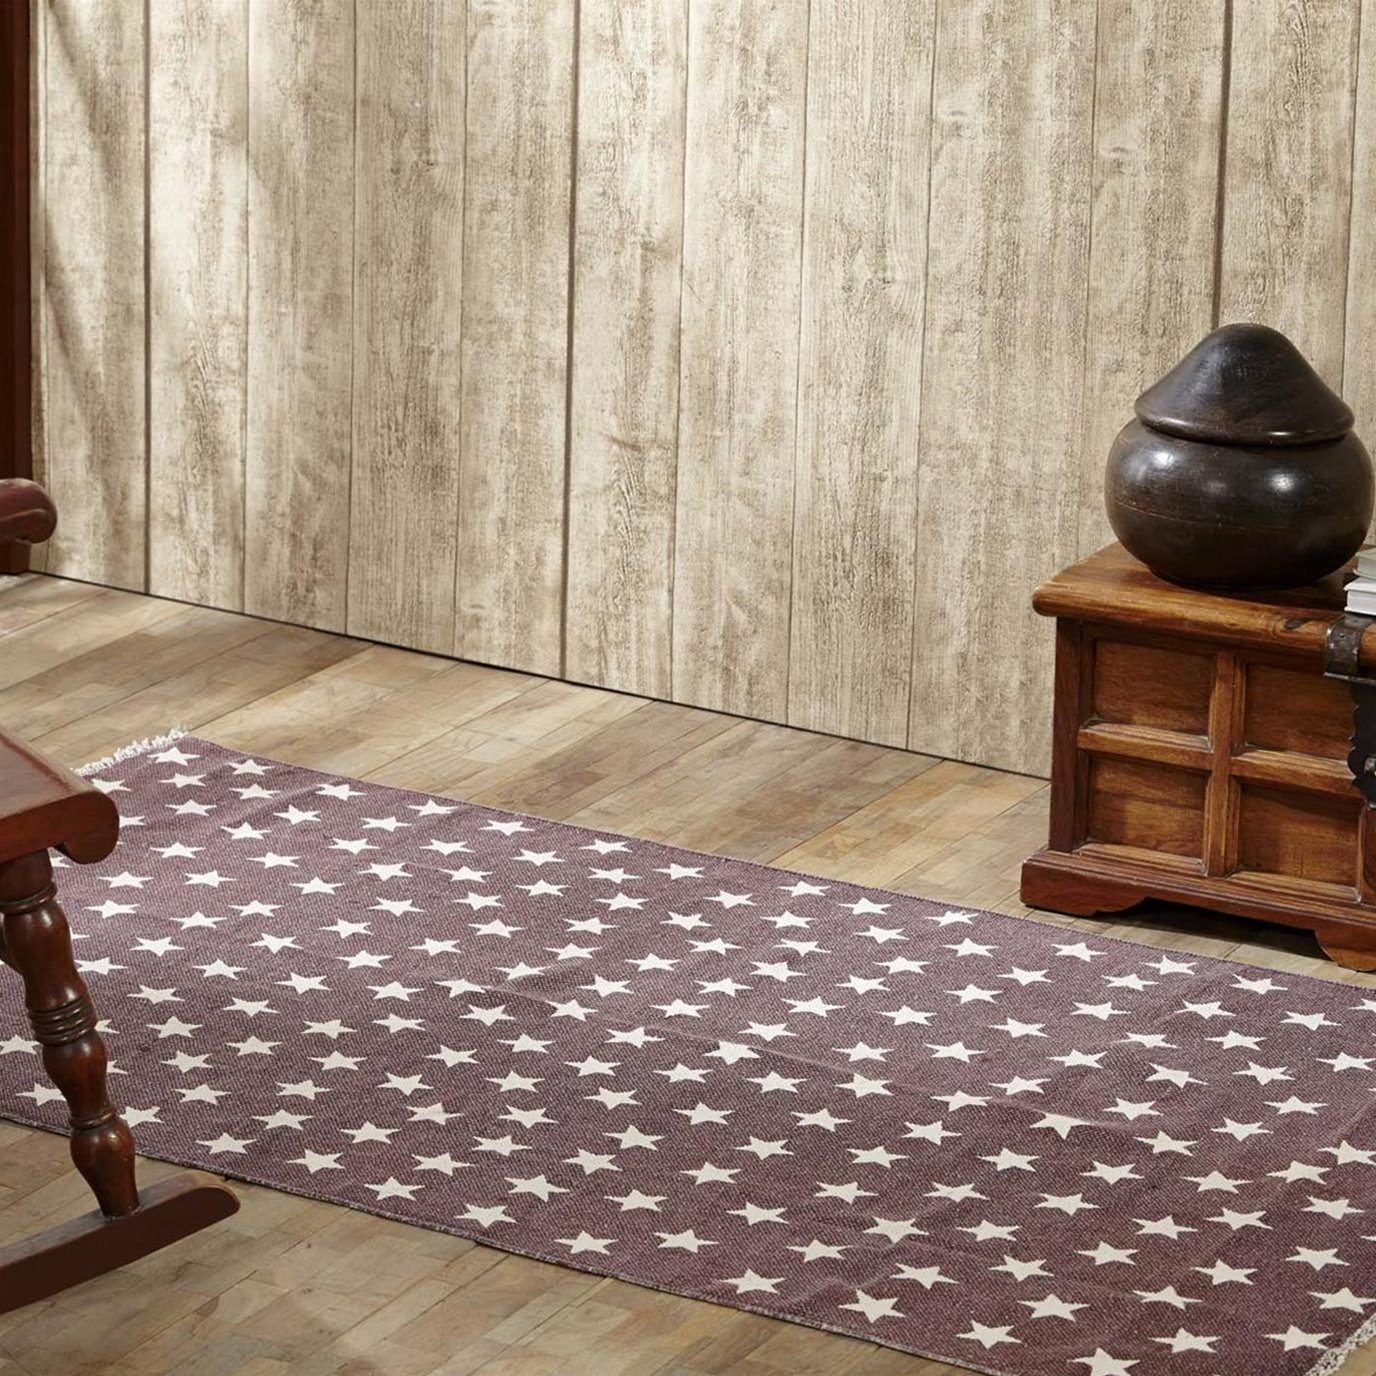 Antique Red Star Rug Rect 36x60